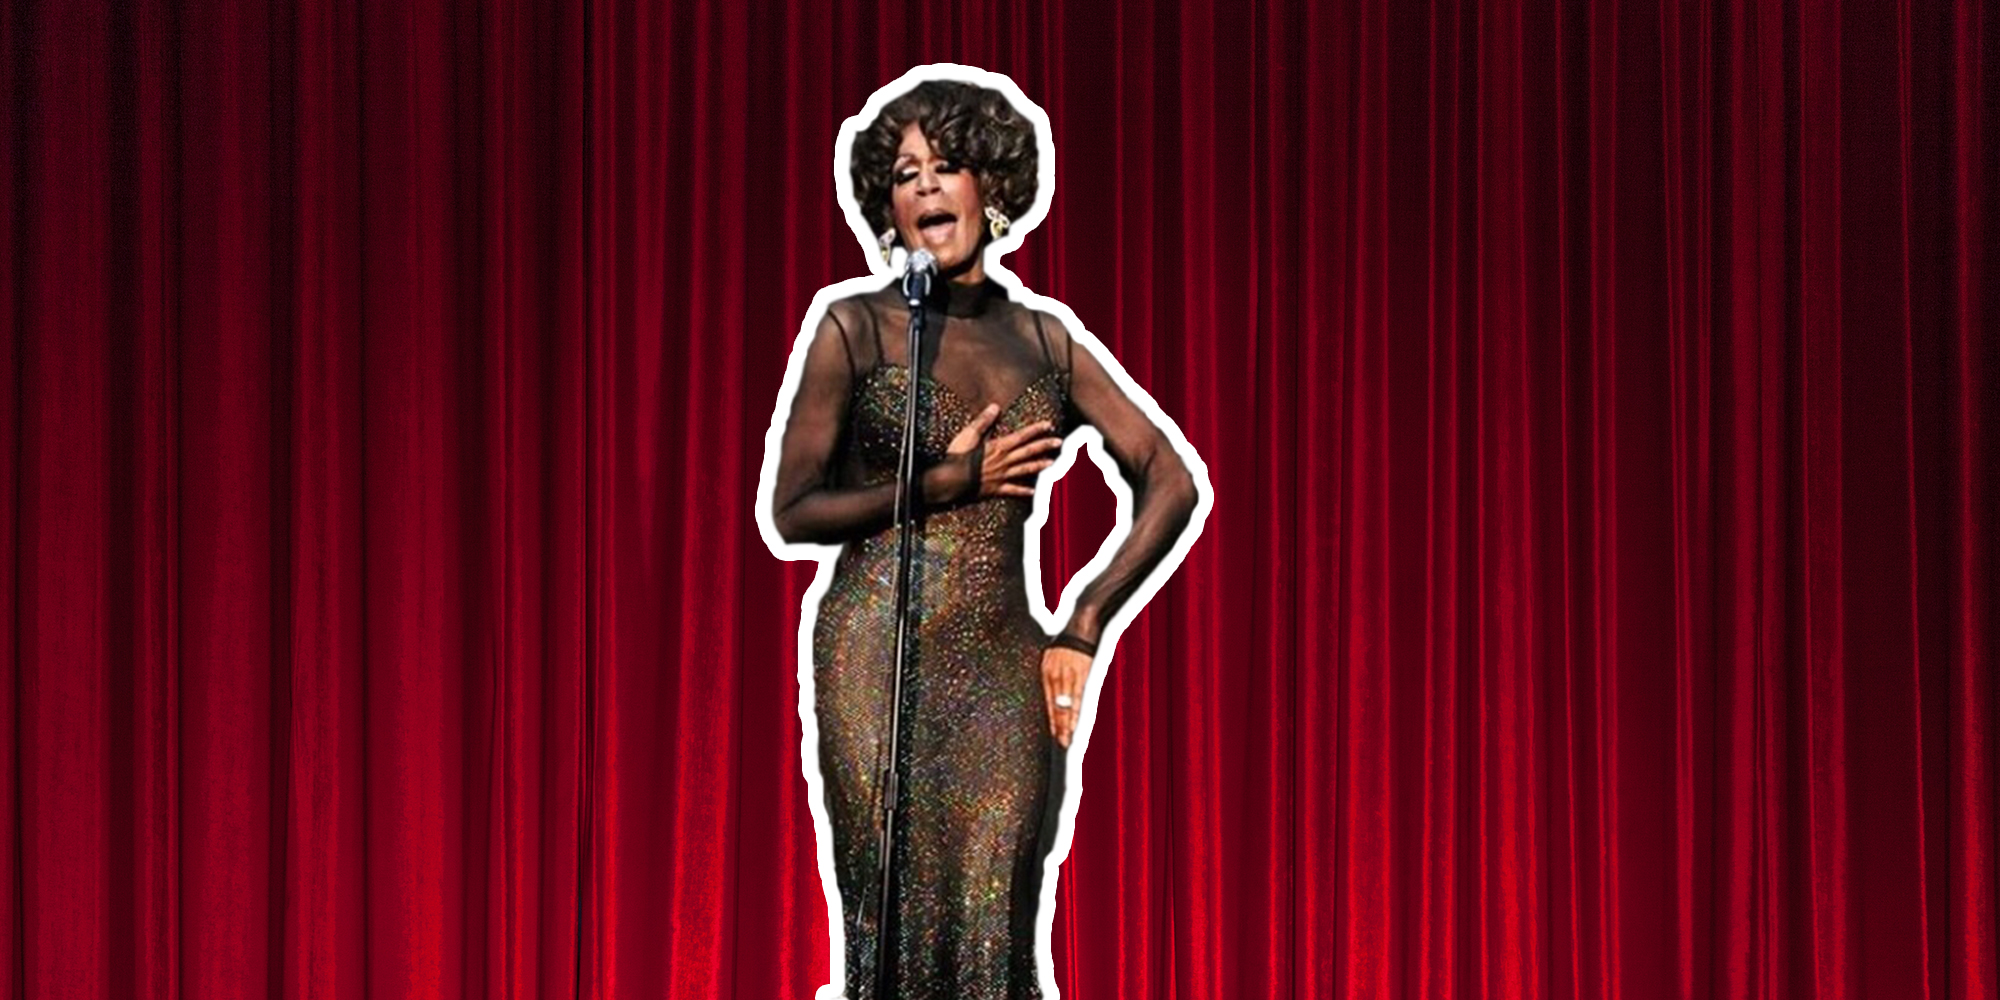 This Palm Springs Queen Is the Best Whitney Houston Impersonator We've Ever Seen (Video)